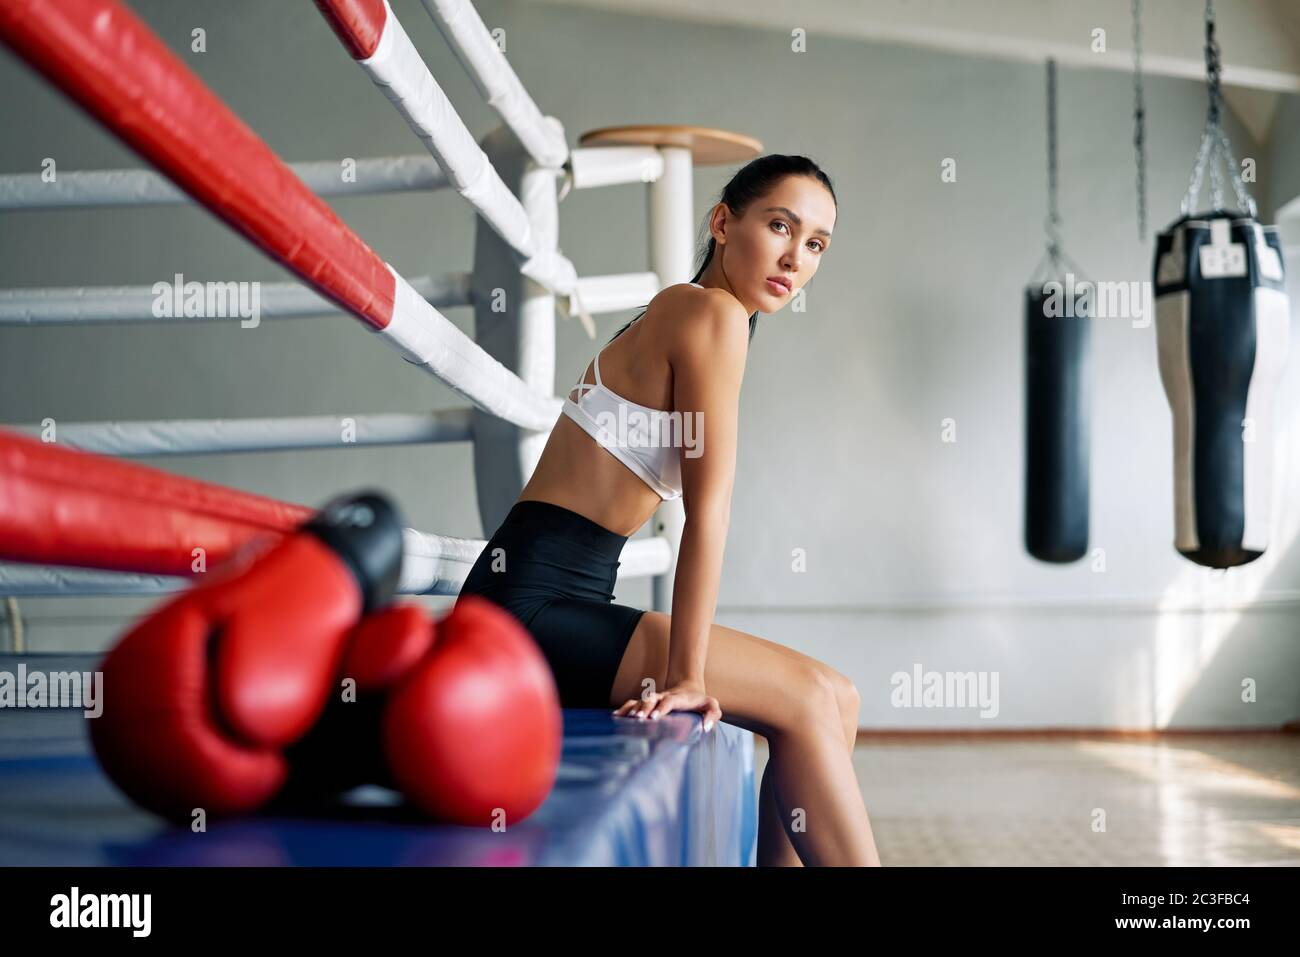 Young beautiful woman relax after fight or workout exercising in boxing ring Stock Photo